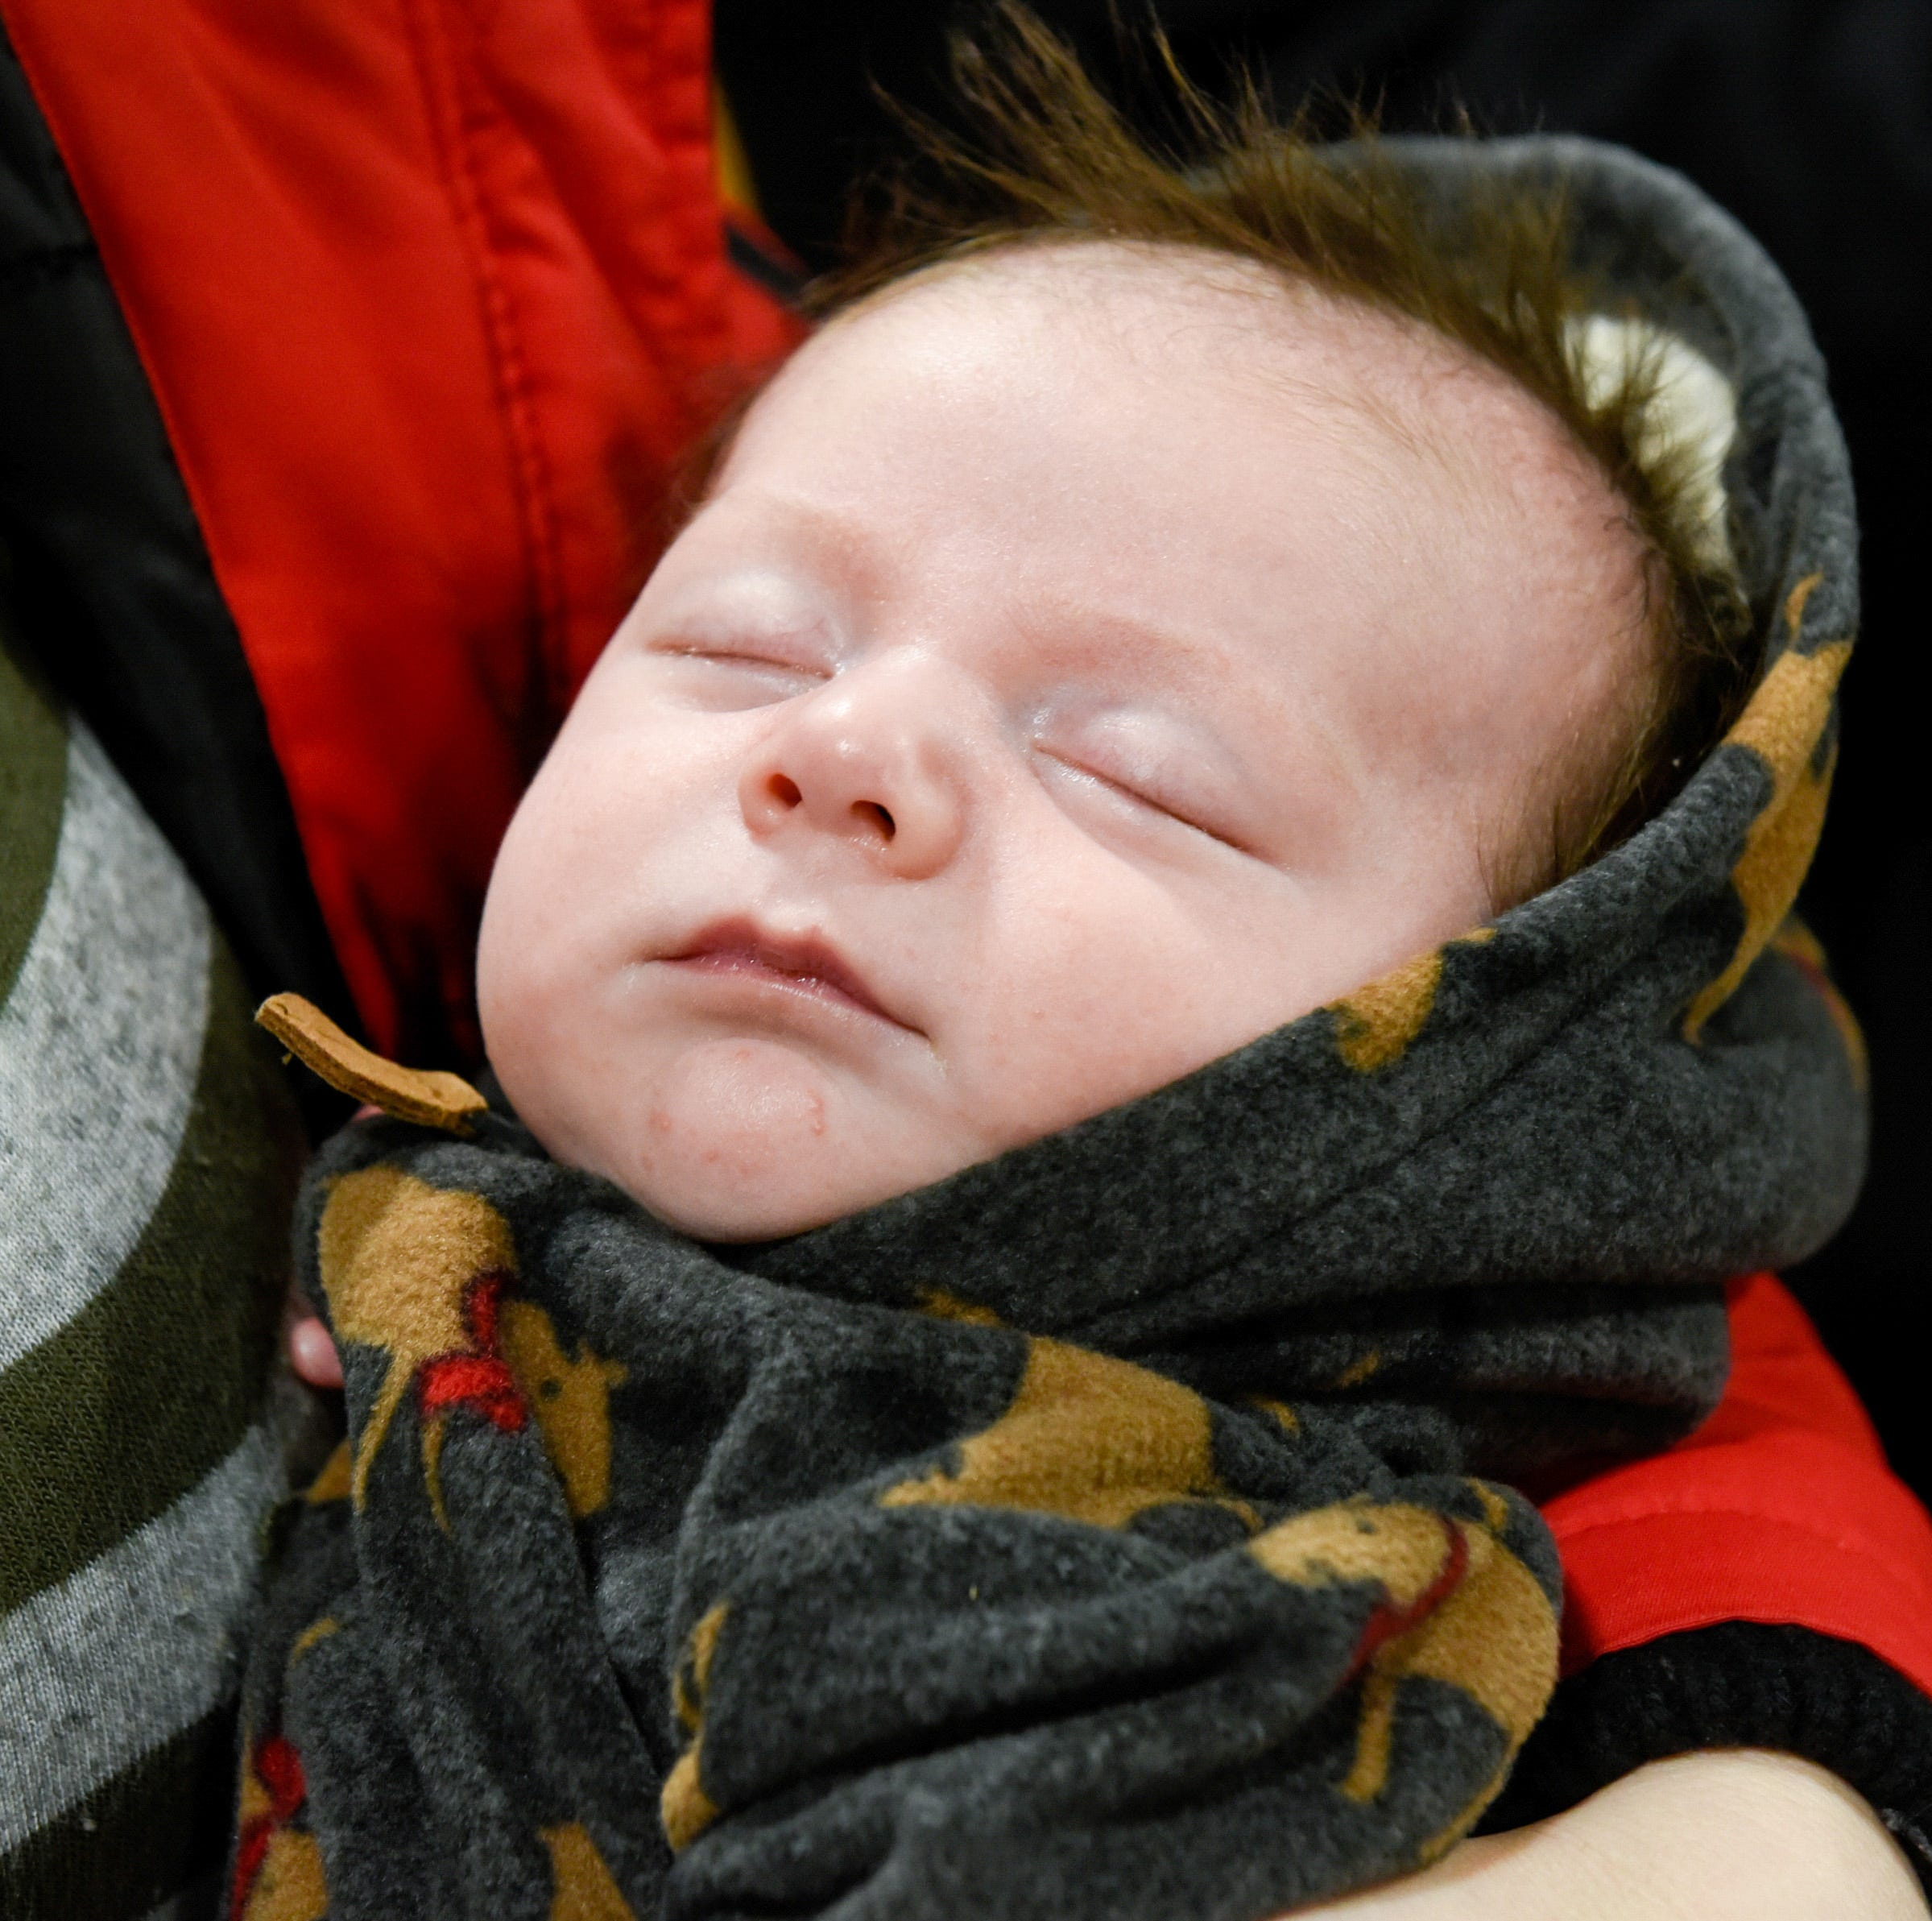 Trigg Breth sleeps through the festivities  Wednesday, Jan. 9, for Gold Cross paramedics Kerin Helmke and Joel Peterson, who delivered him in the back of their ambulance Dec. 5.